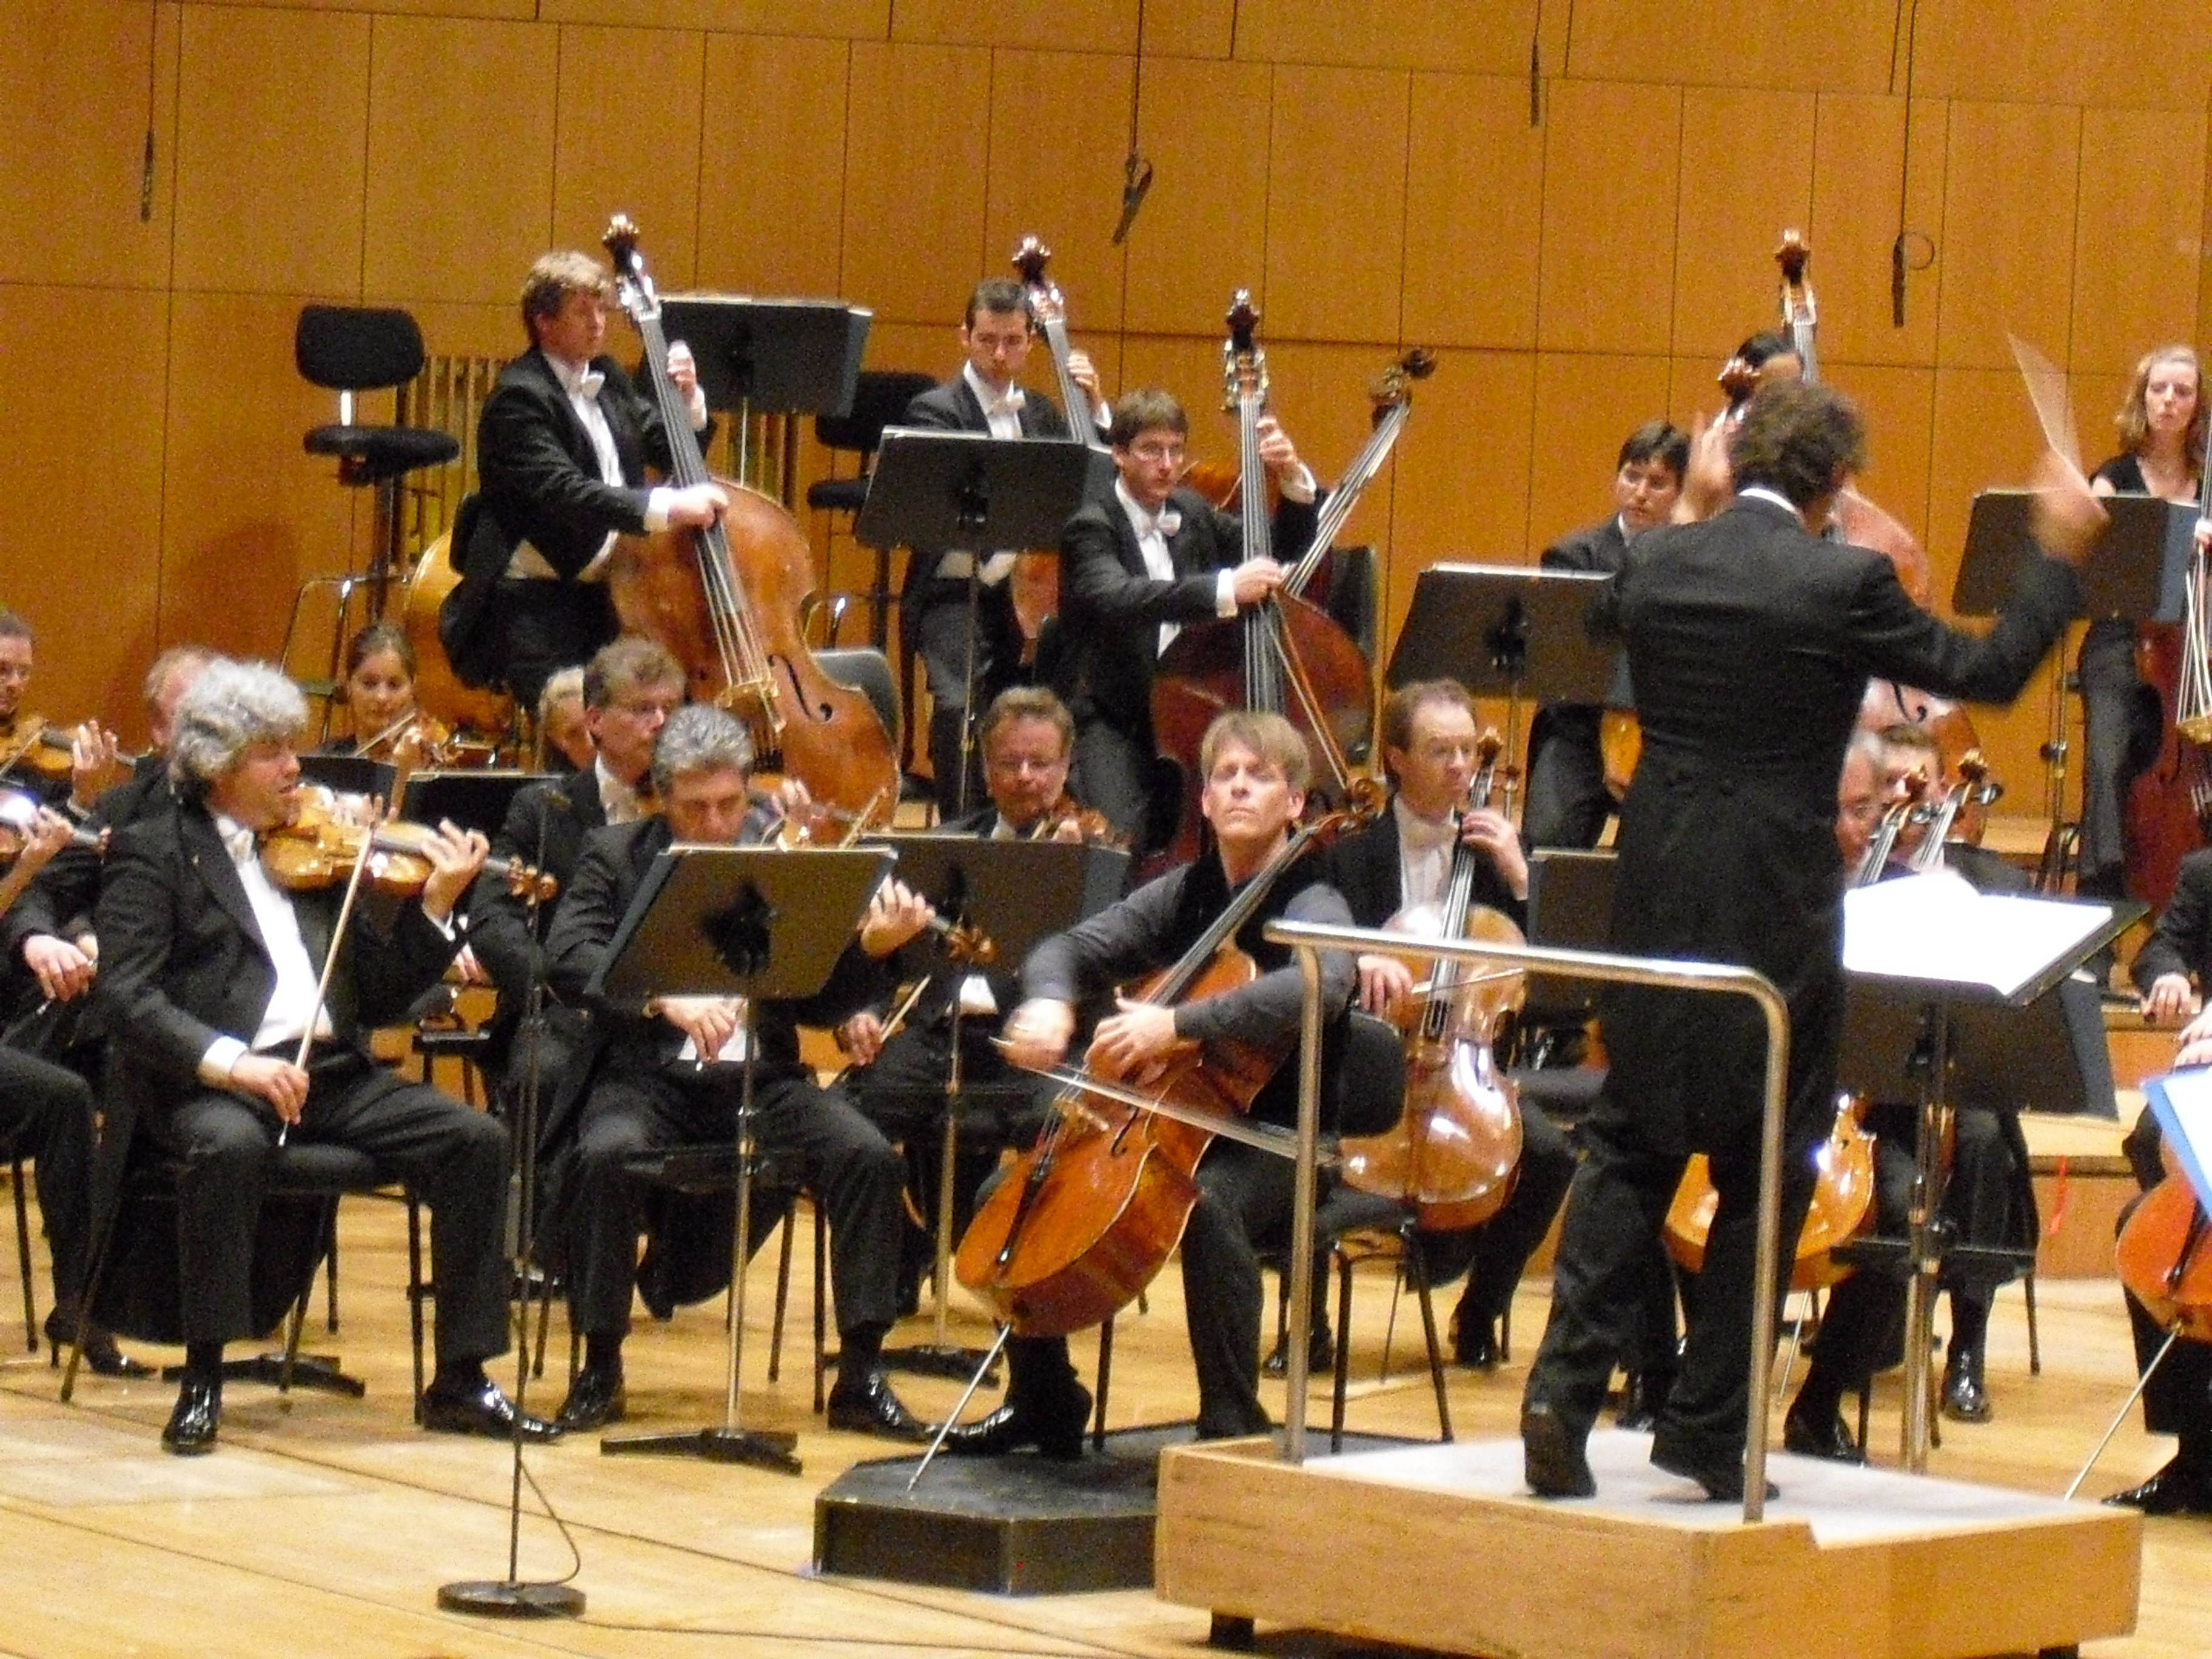 Alban at Gasteig in München